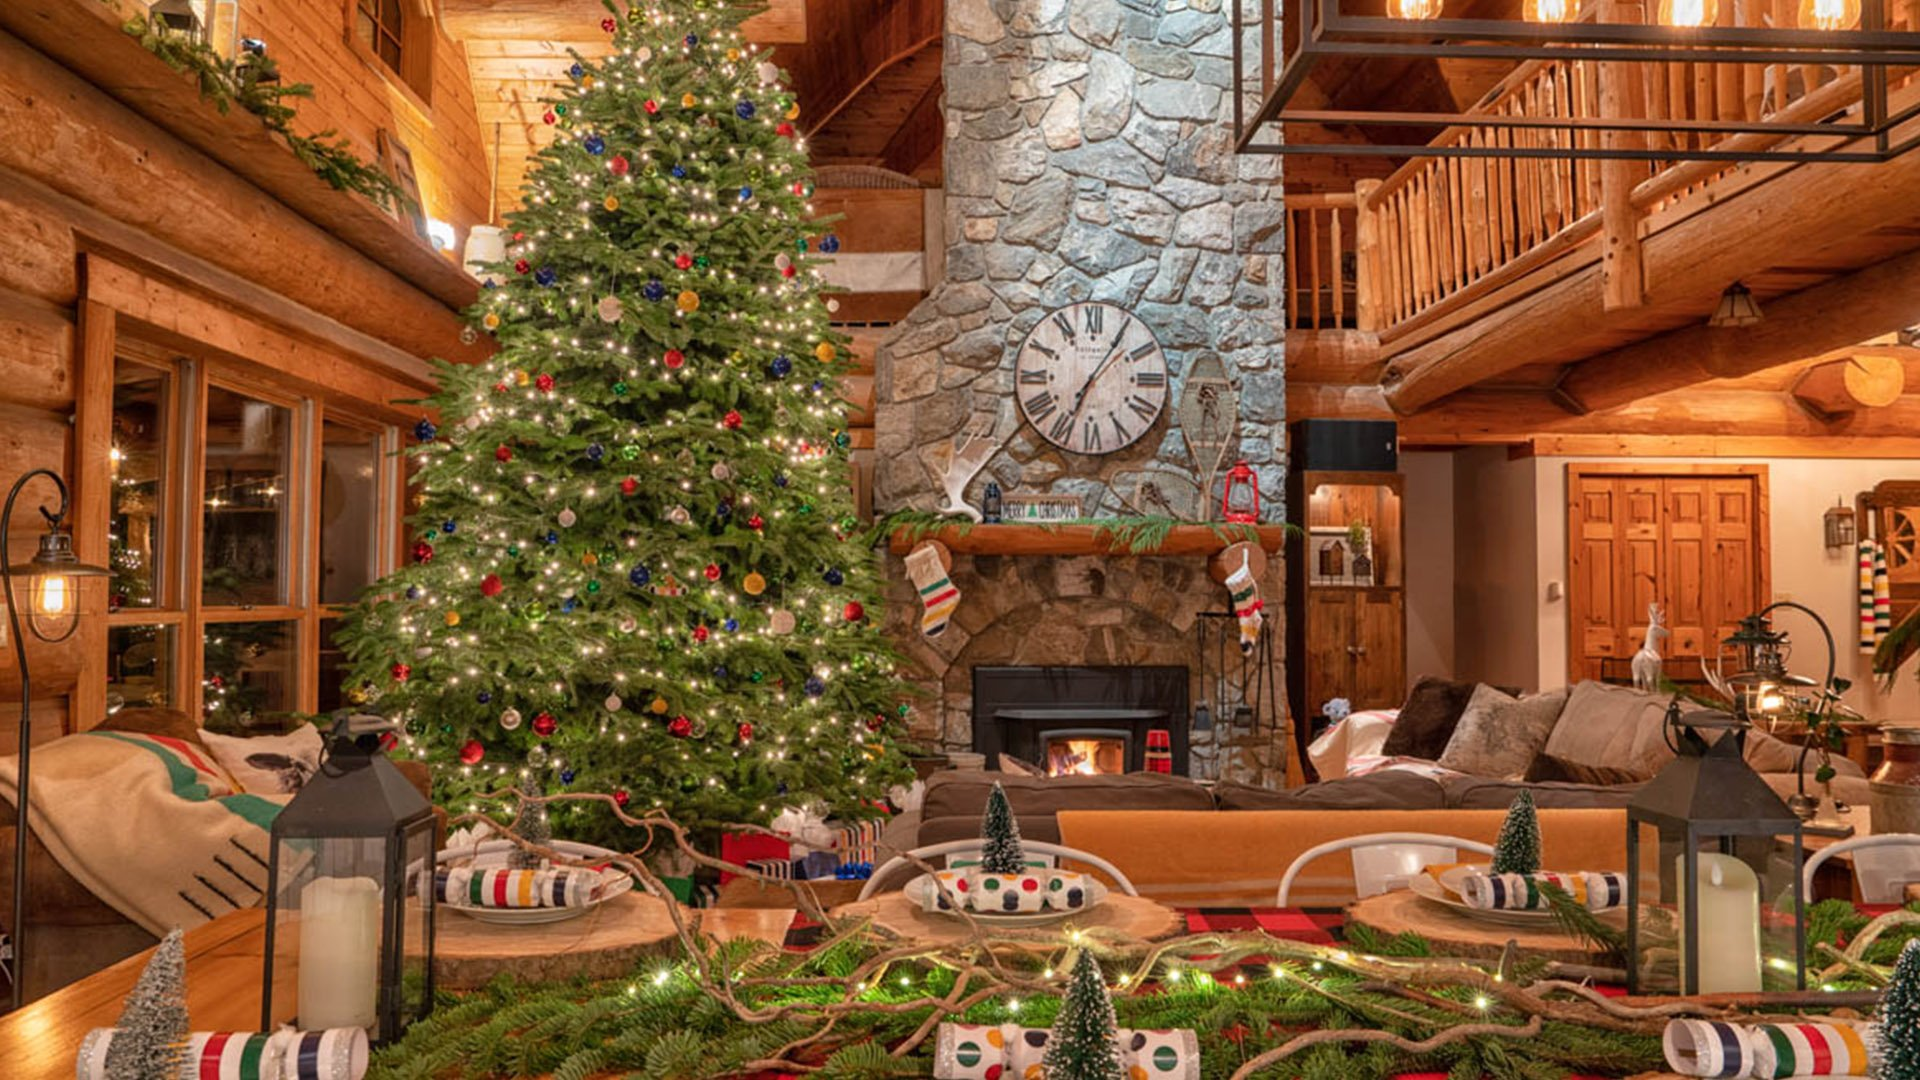 https://spatulamedia.ca/wp-content/uploads/2019/05/homes-for-the-holidays-caldwell-farm.jpg